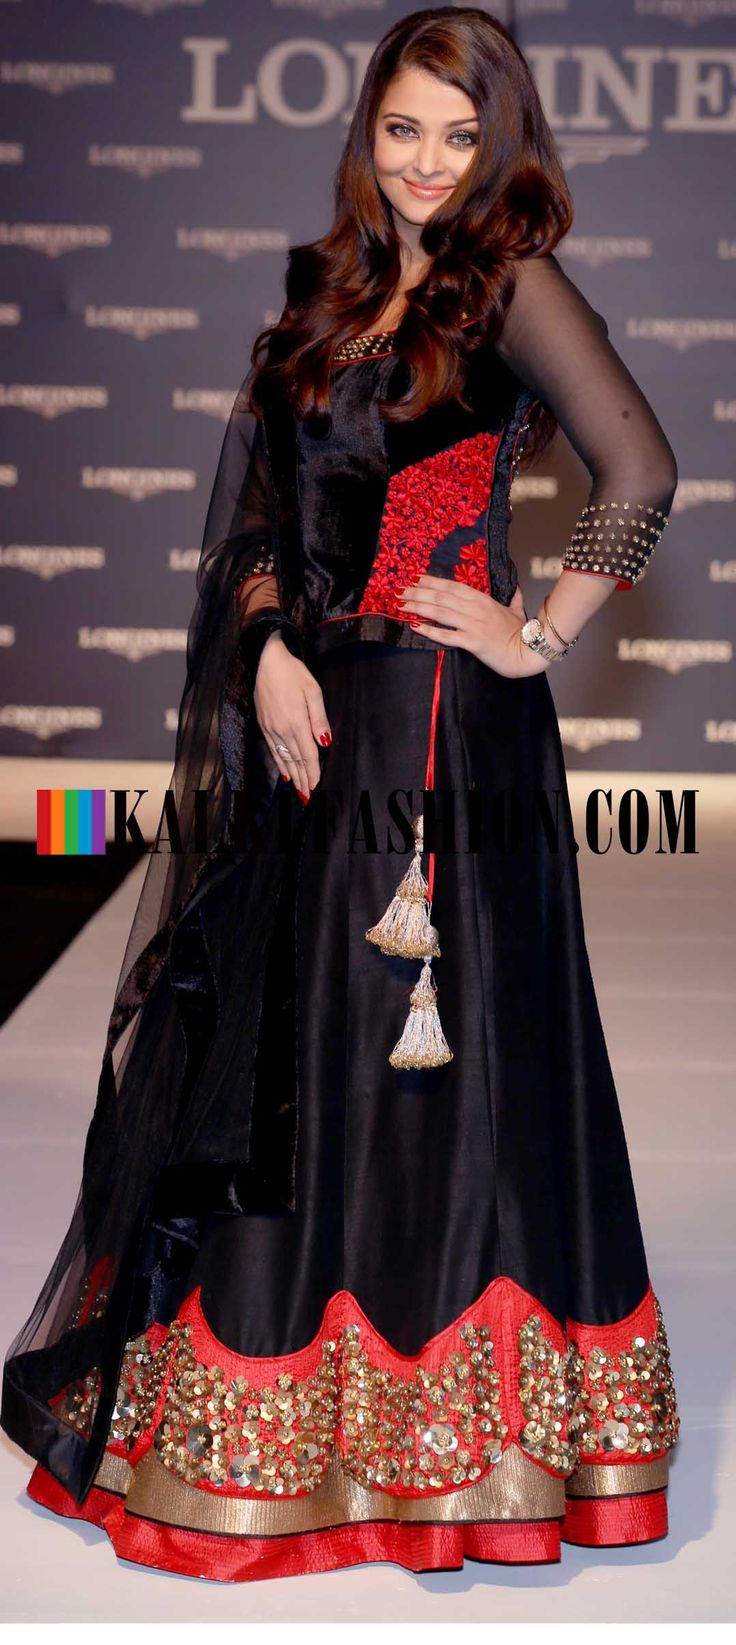 Aishwariya Rai in beautiful black designer lehenga by Monica and Karishma at Longiness watch in India Compaign . #lehenga #choli #indian #shaadi #bridal #fashion #style #desi #designer #blouse #wedding #gorgeous #beautiful